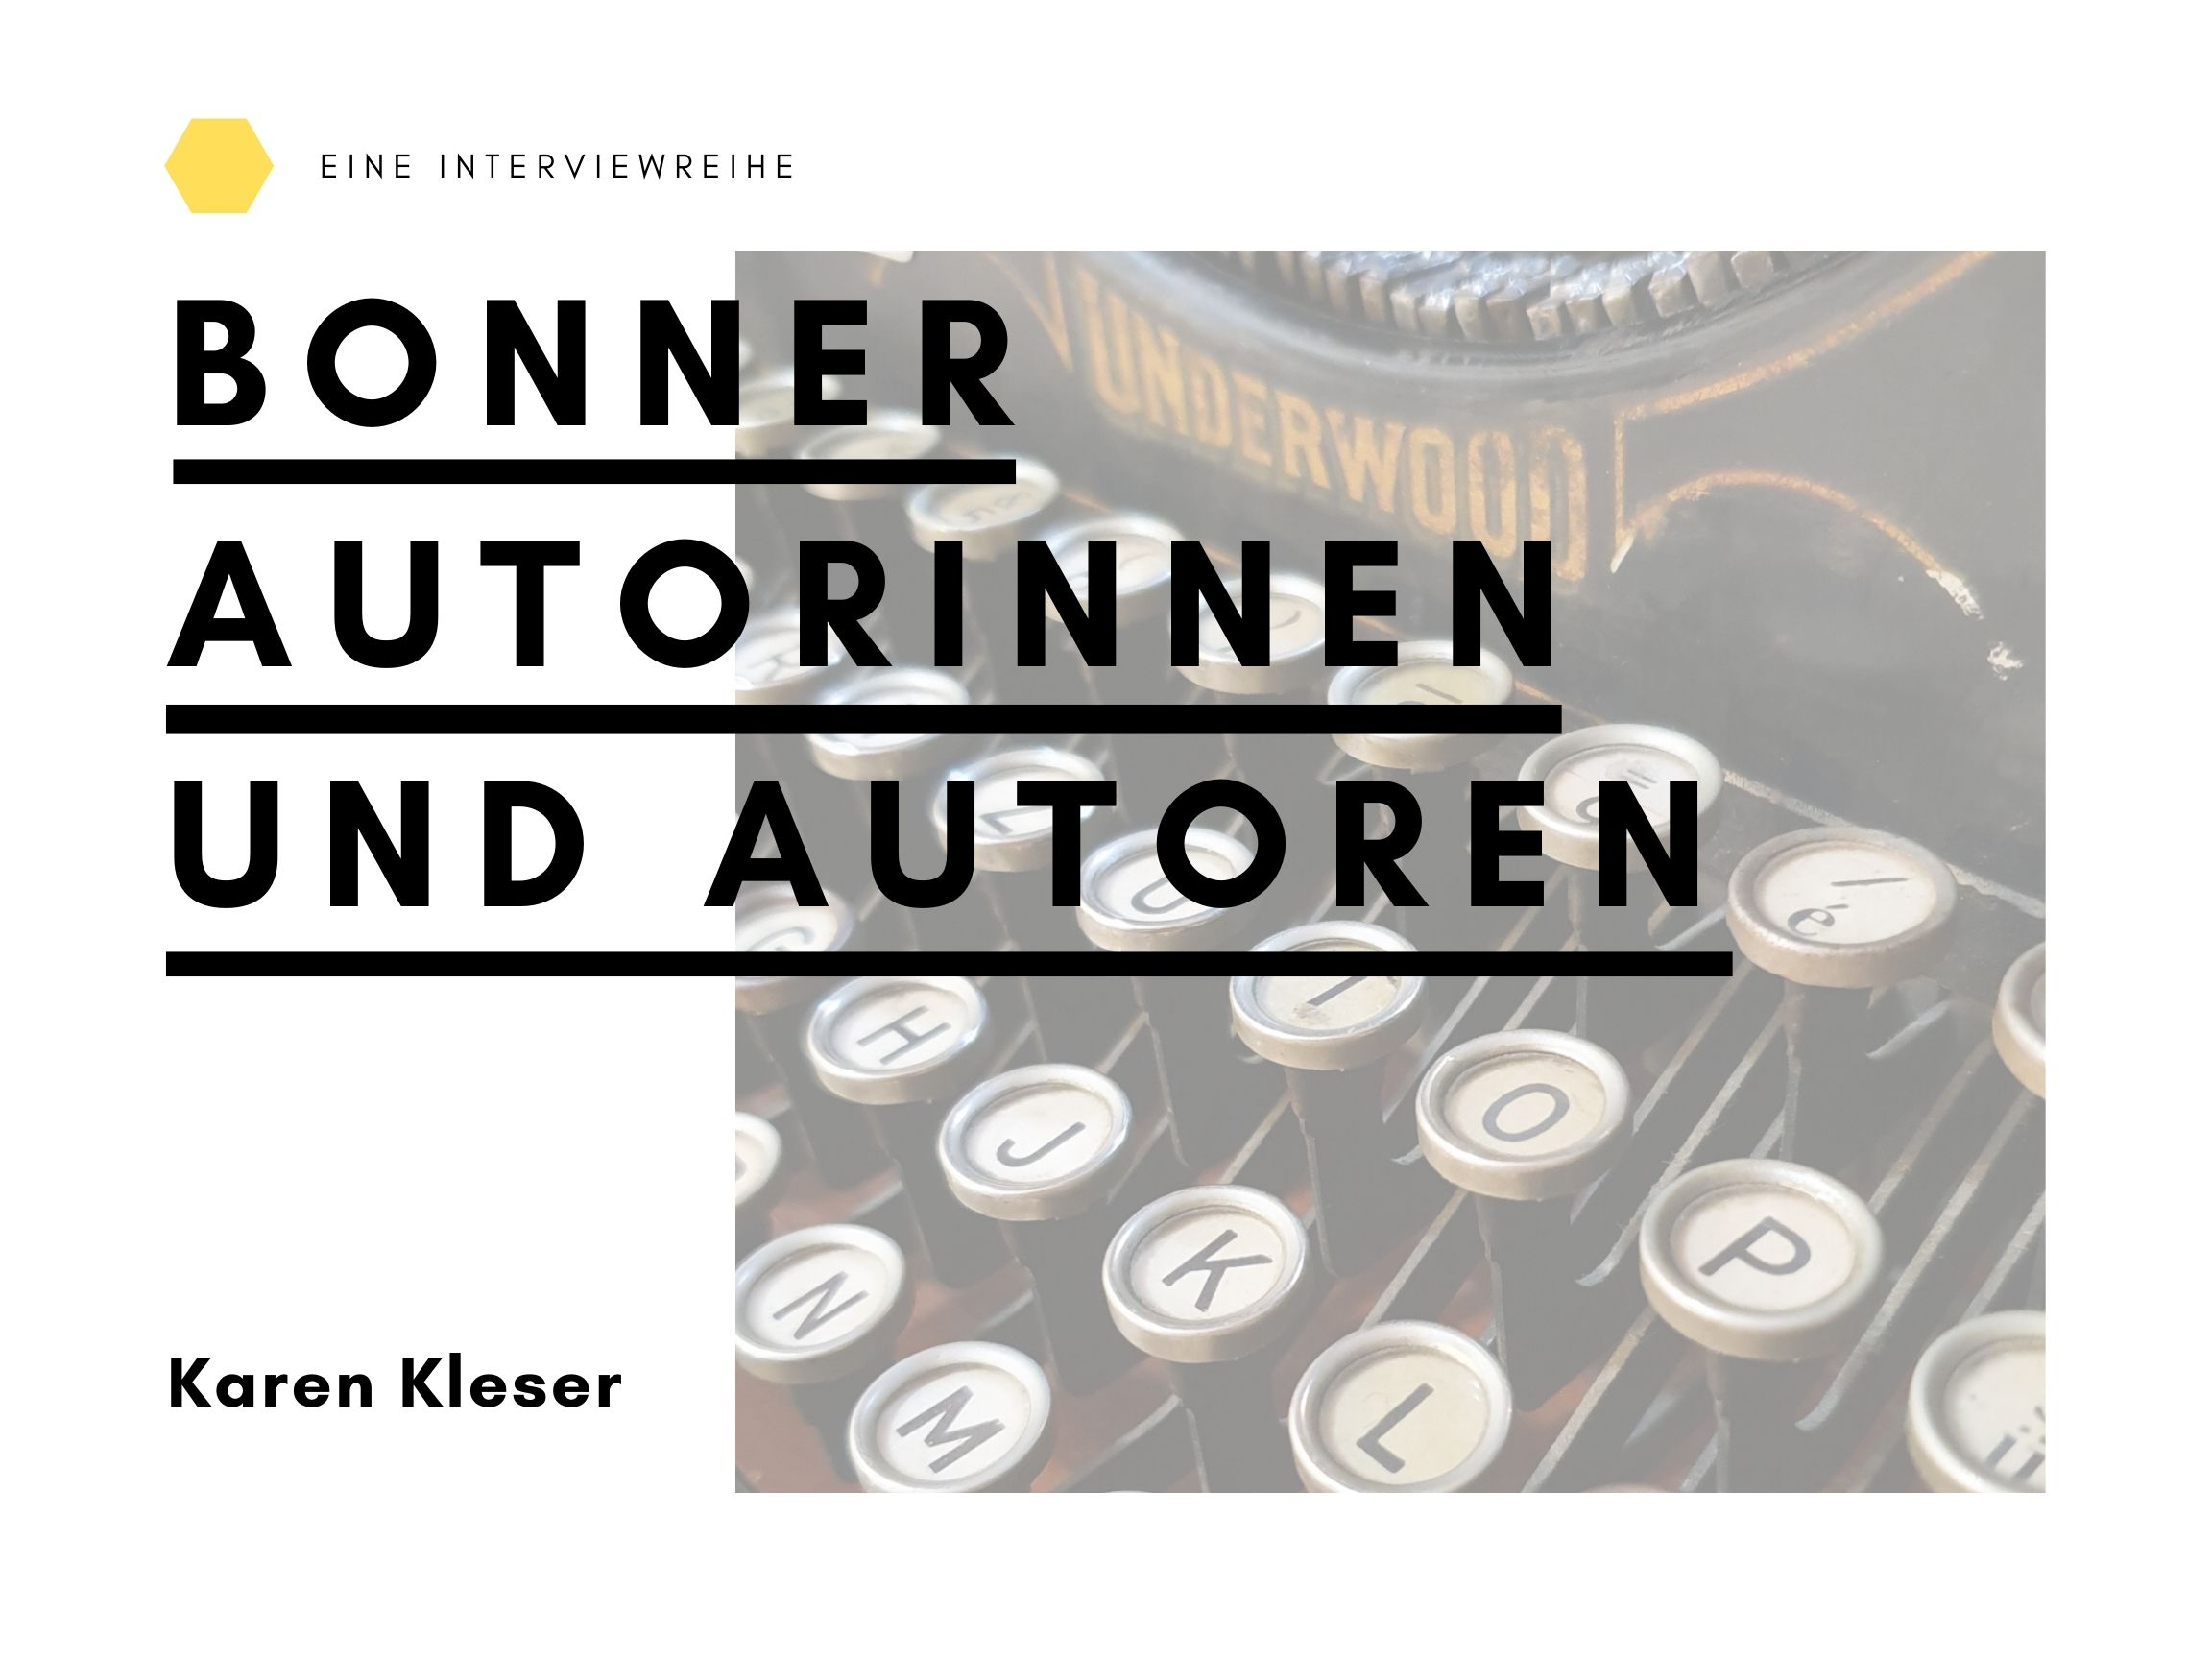 Interview mit Karen Kleser